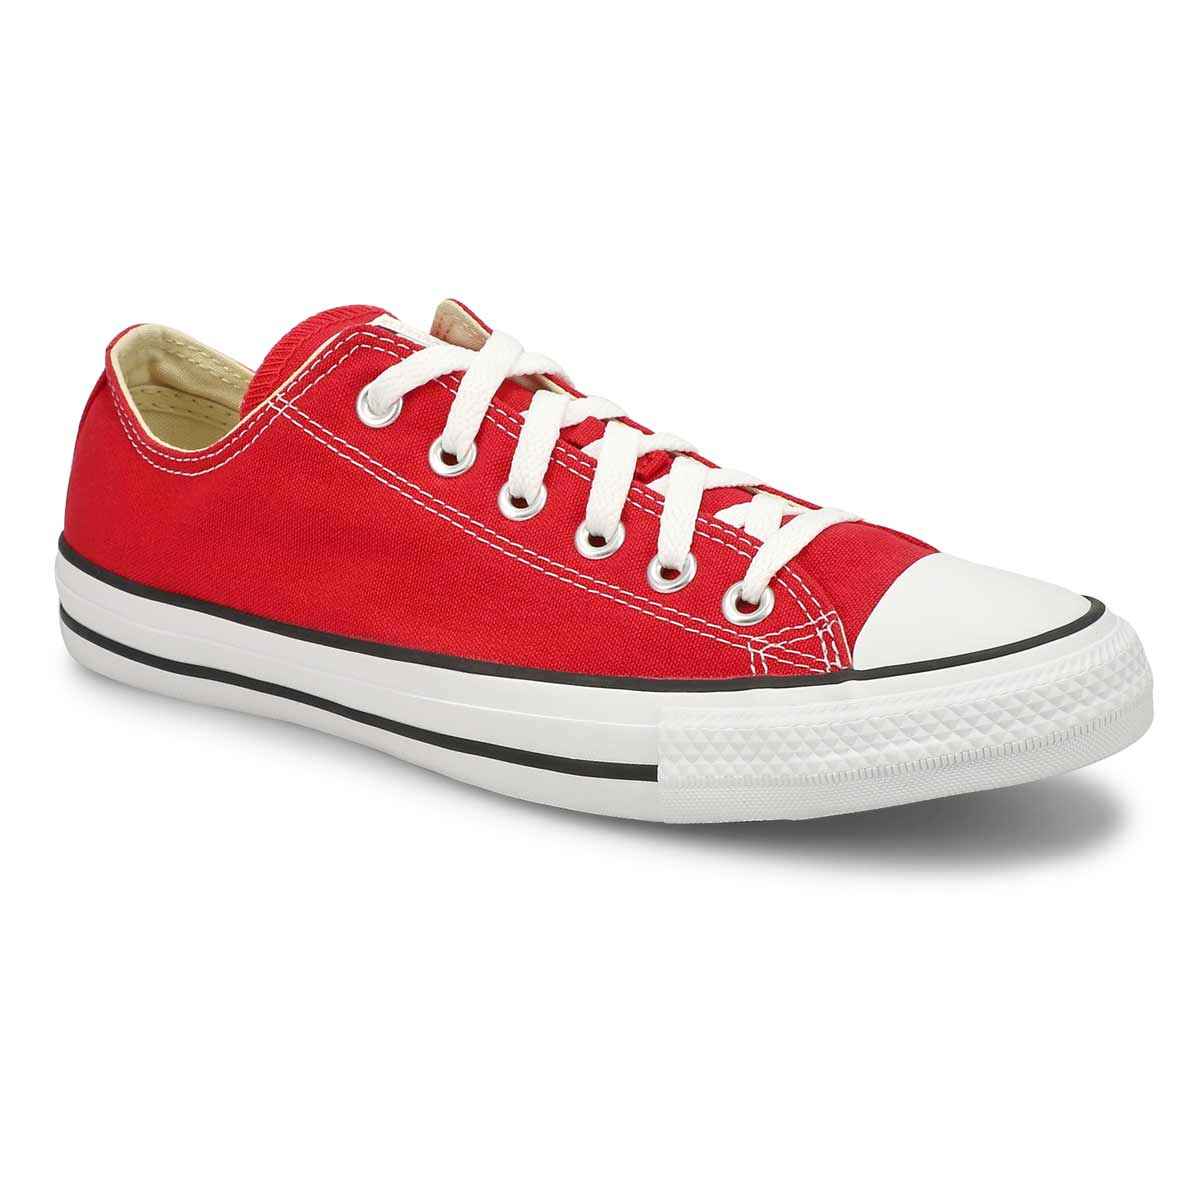 Mns CT All Star Core Ox red sneaker